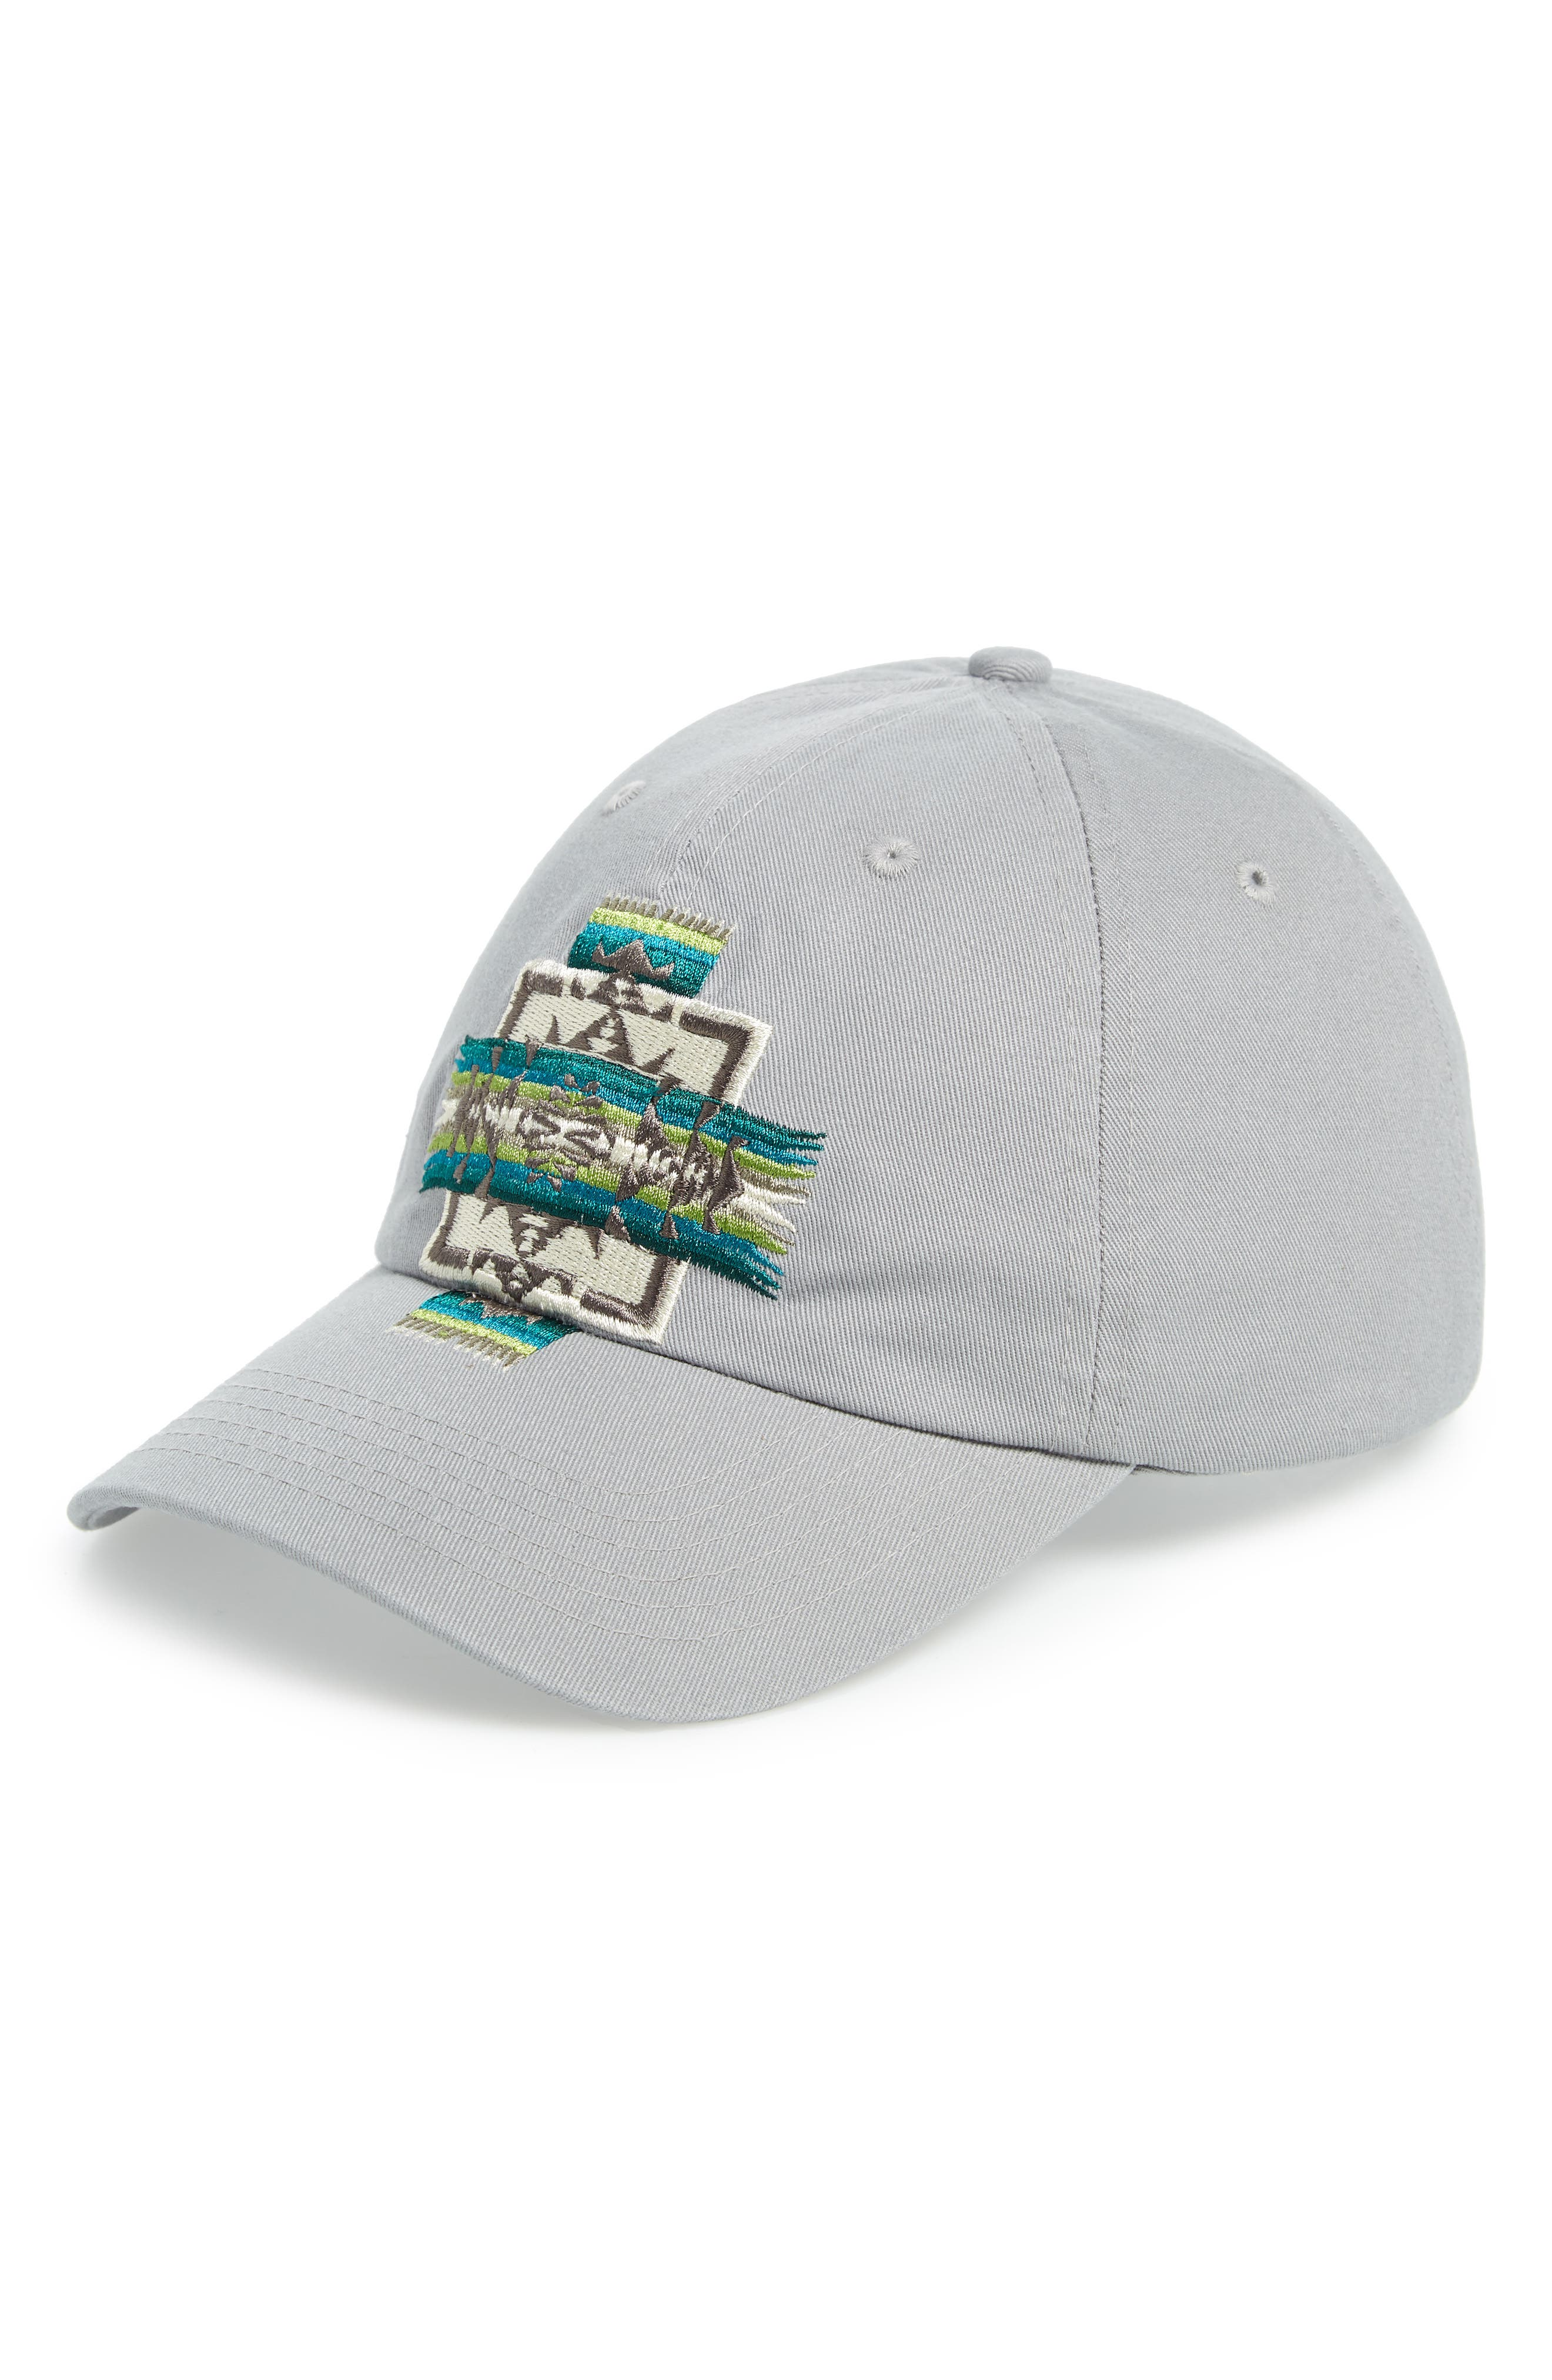 Chief Joseph Embroidered Cap,                             Main thumbnail 1, color,                             LIGHT GREY